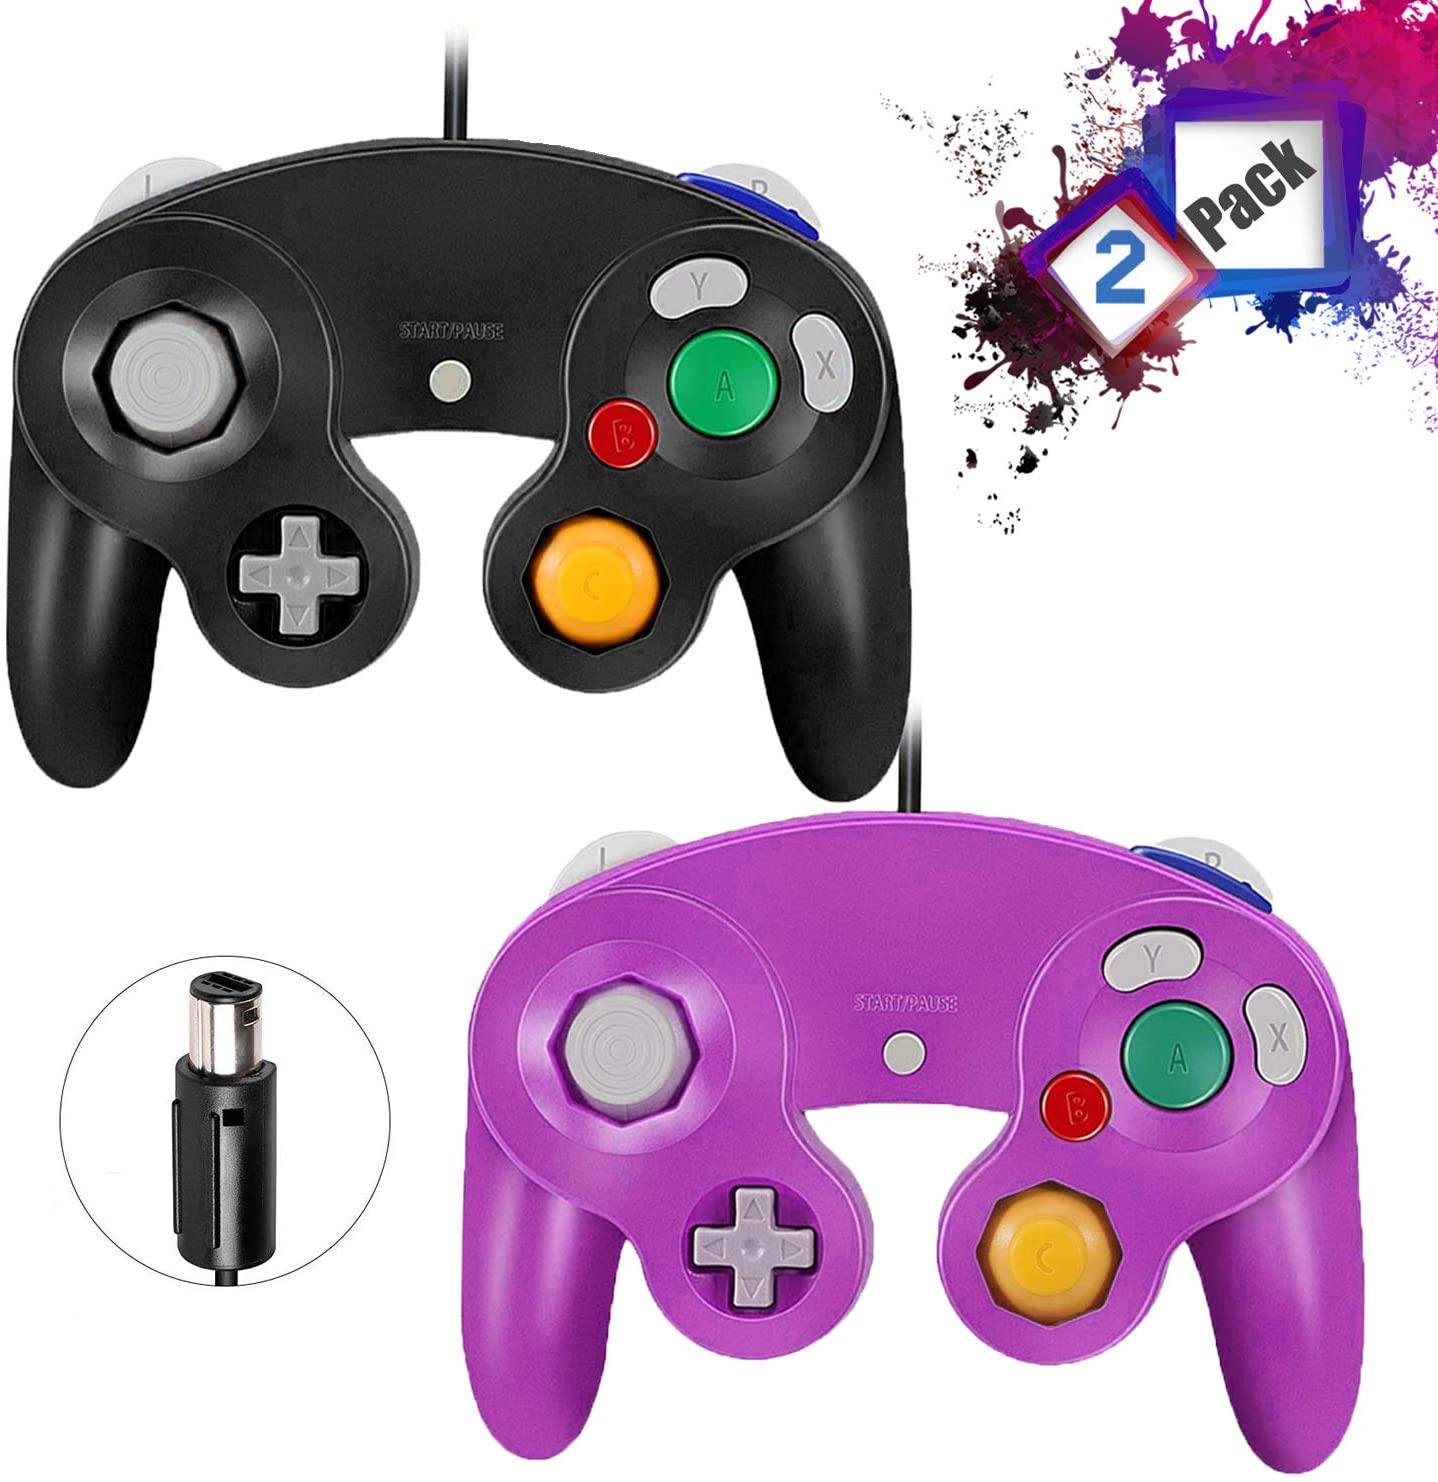 Gamecube Controllers,GALGO Classic Gamecube wii Controller for Nintendo Gamecube Console, Compatible with Wii (Black and Purple)